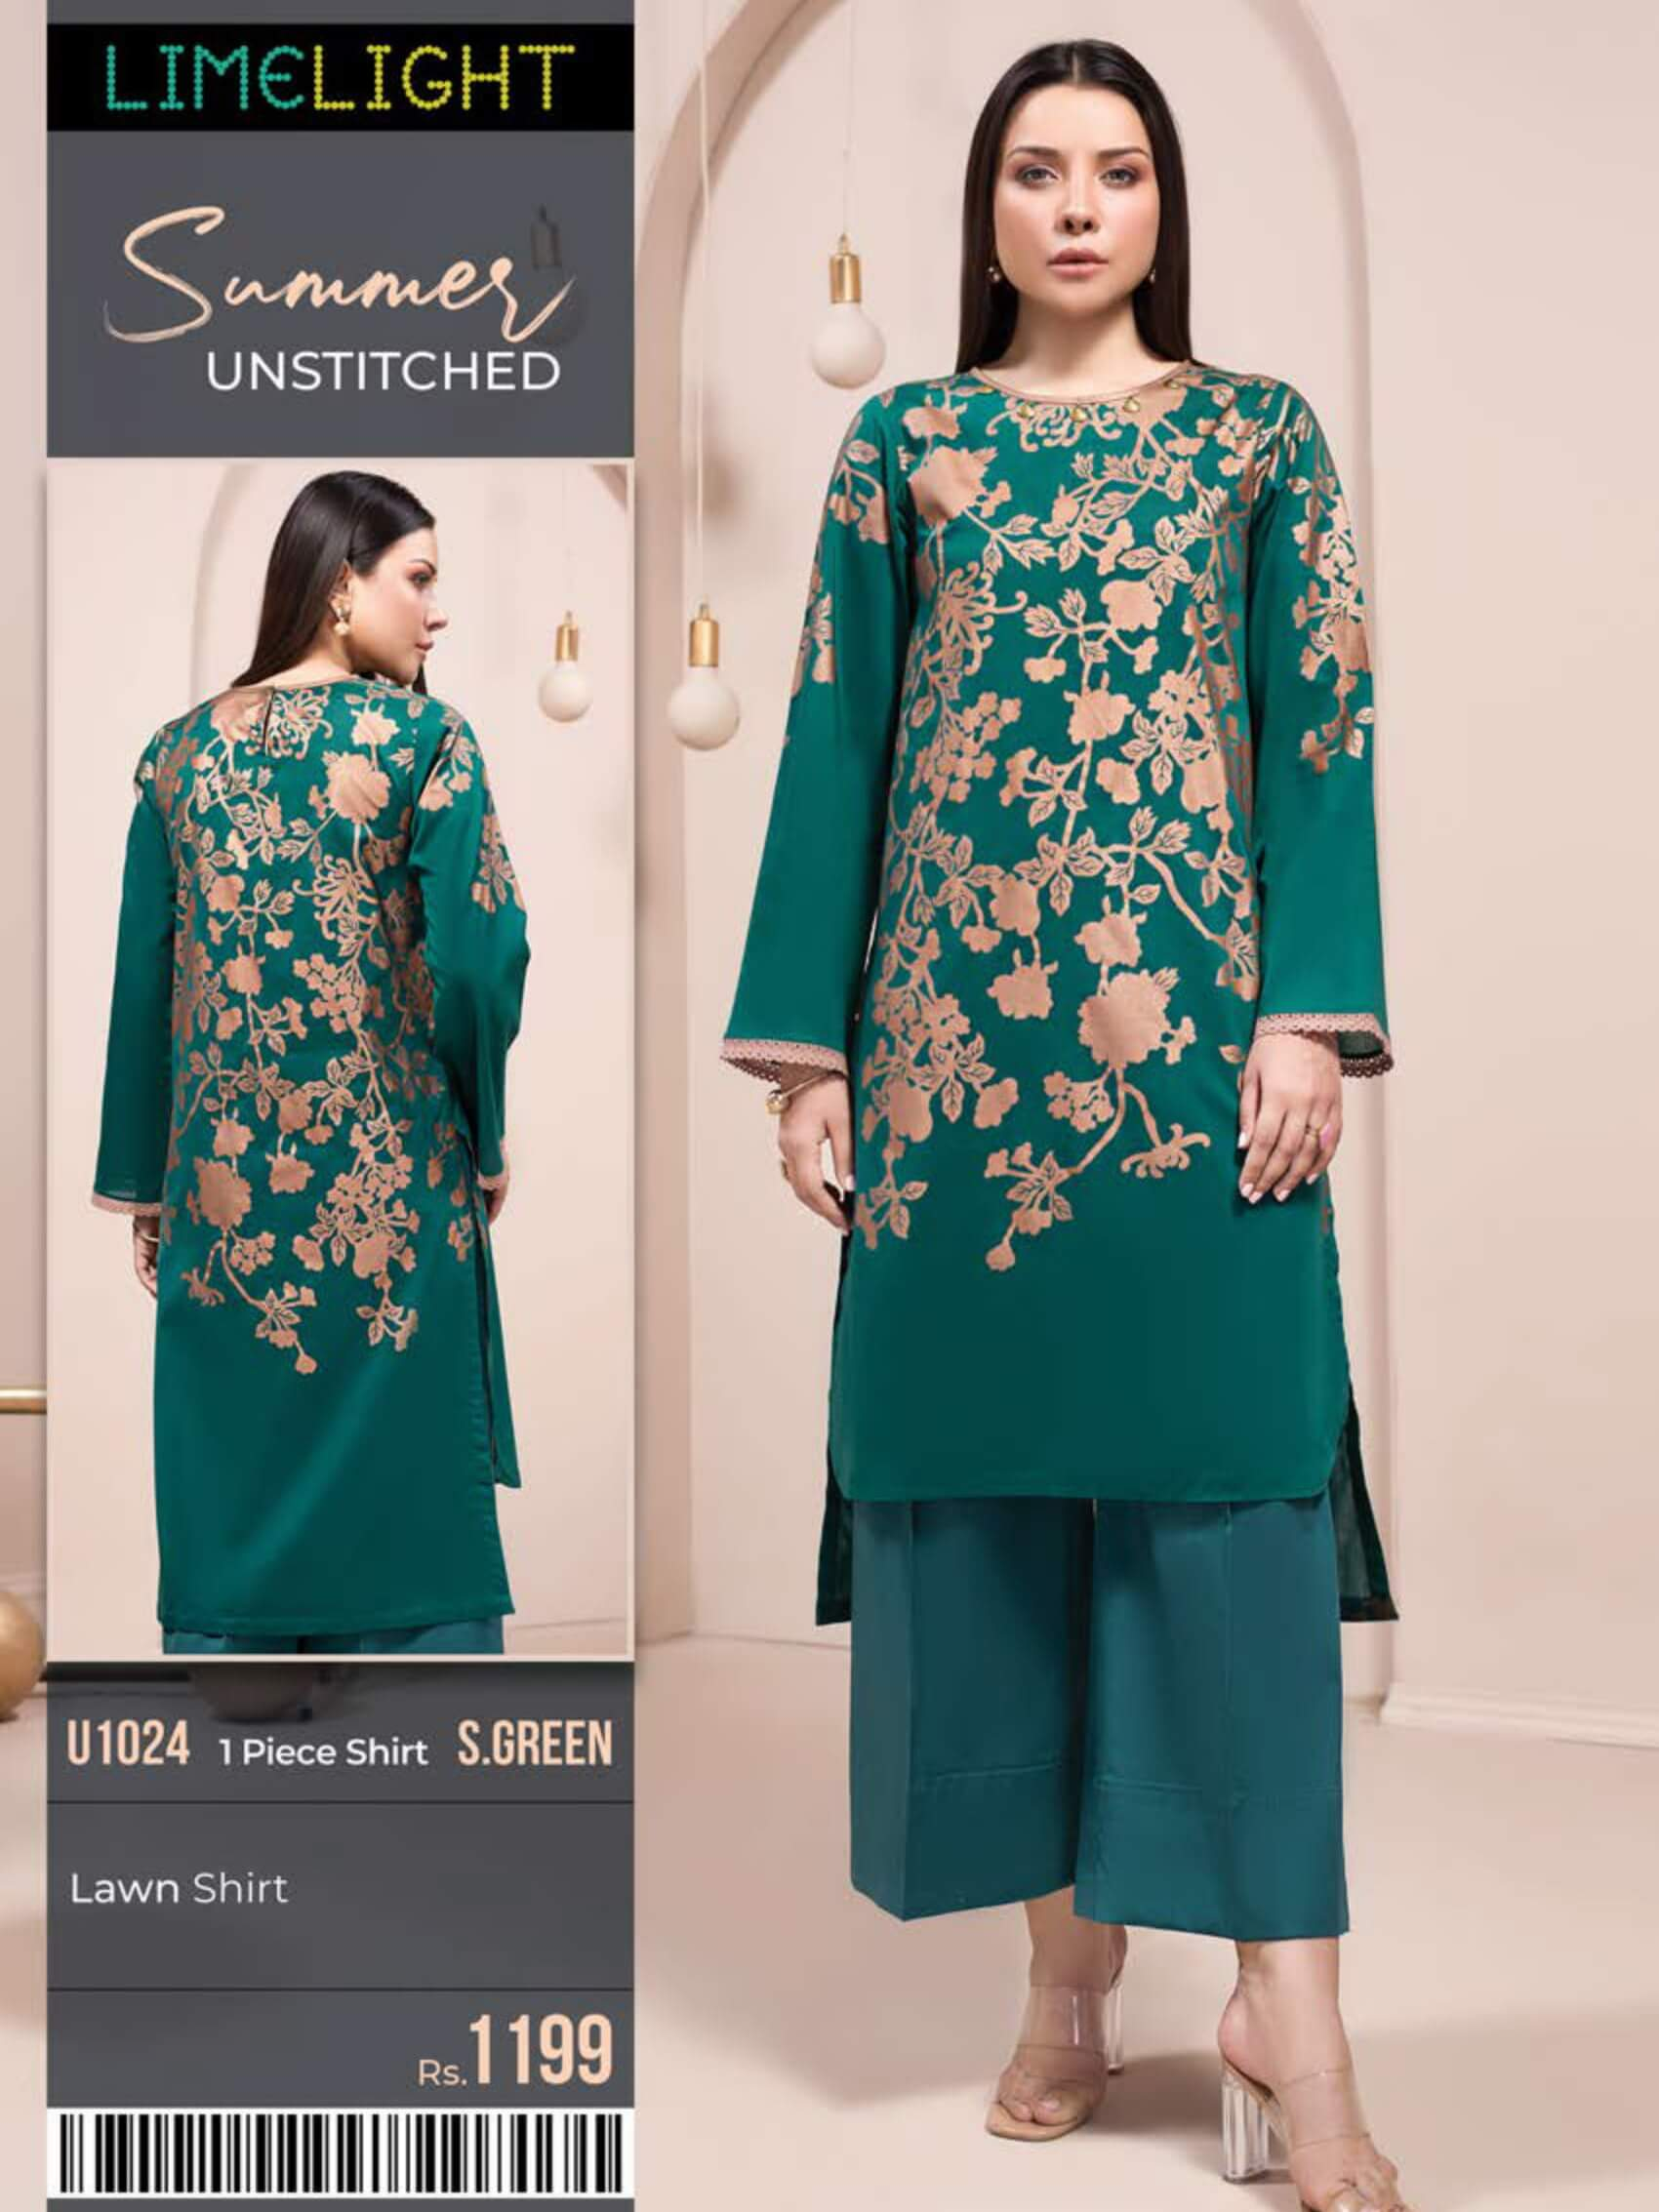 Limelight Lawn Shirt Summer Unstitched 2020 U1024 S Green - FaisalFabrics.pk